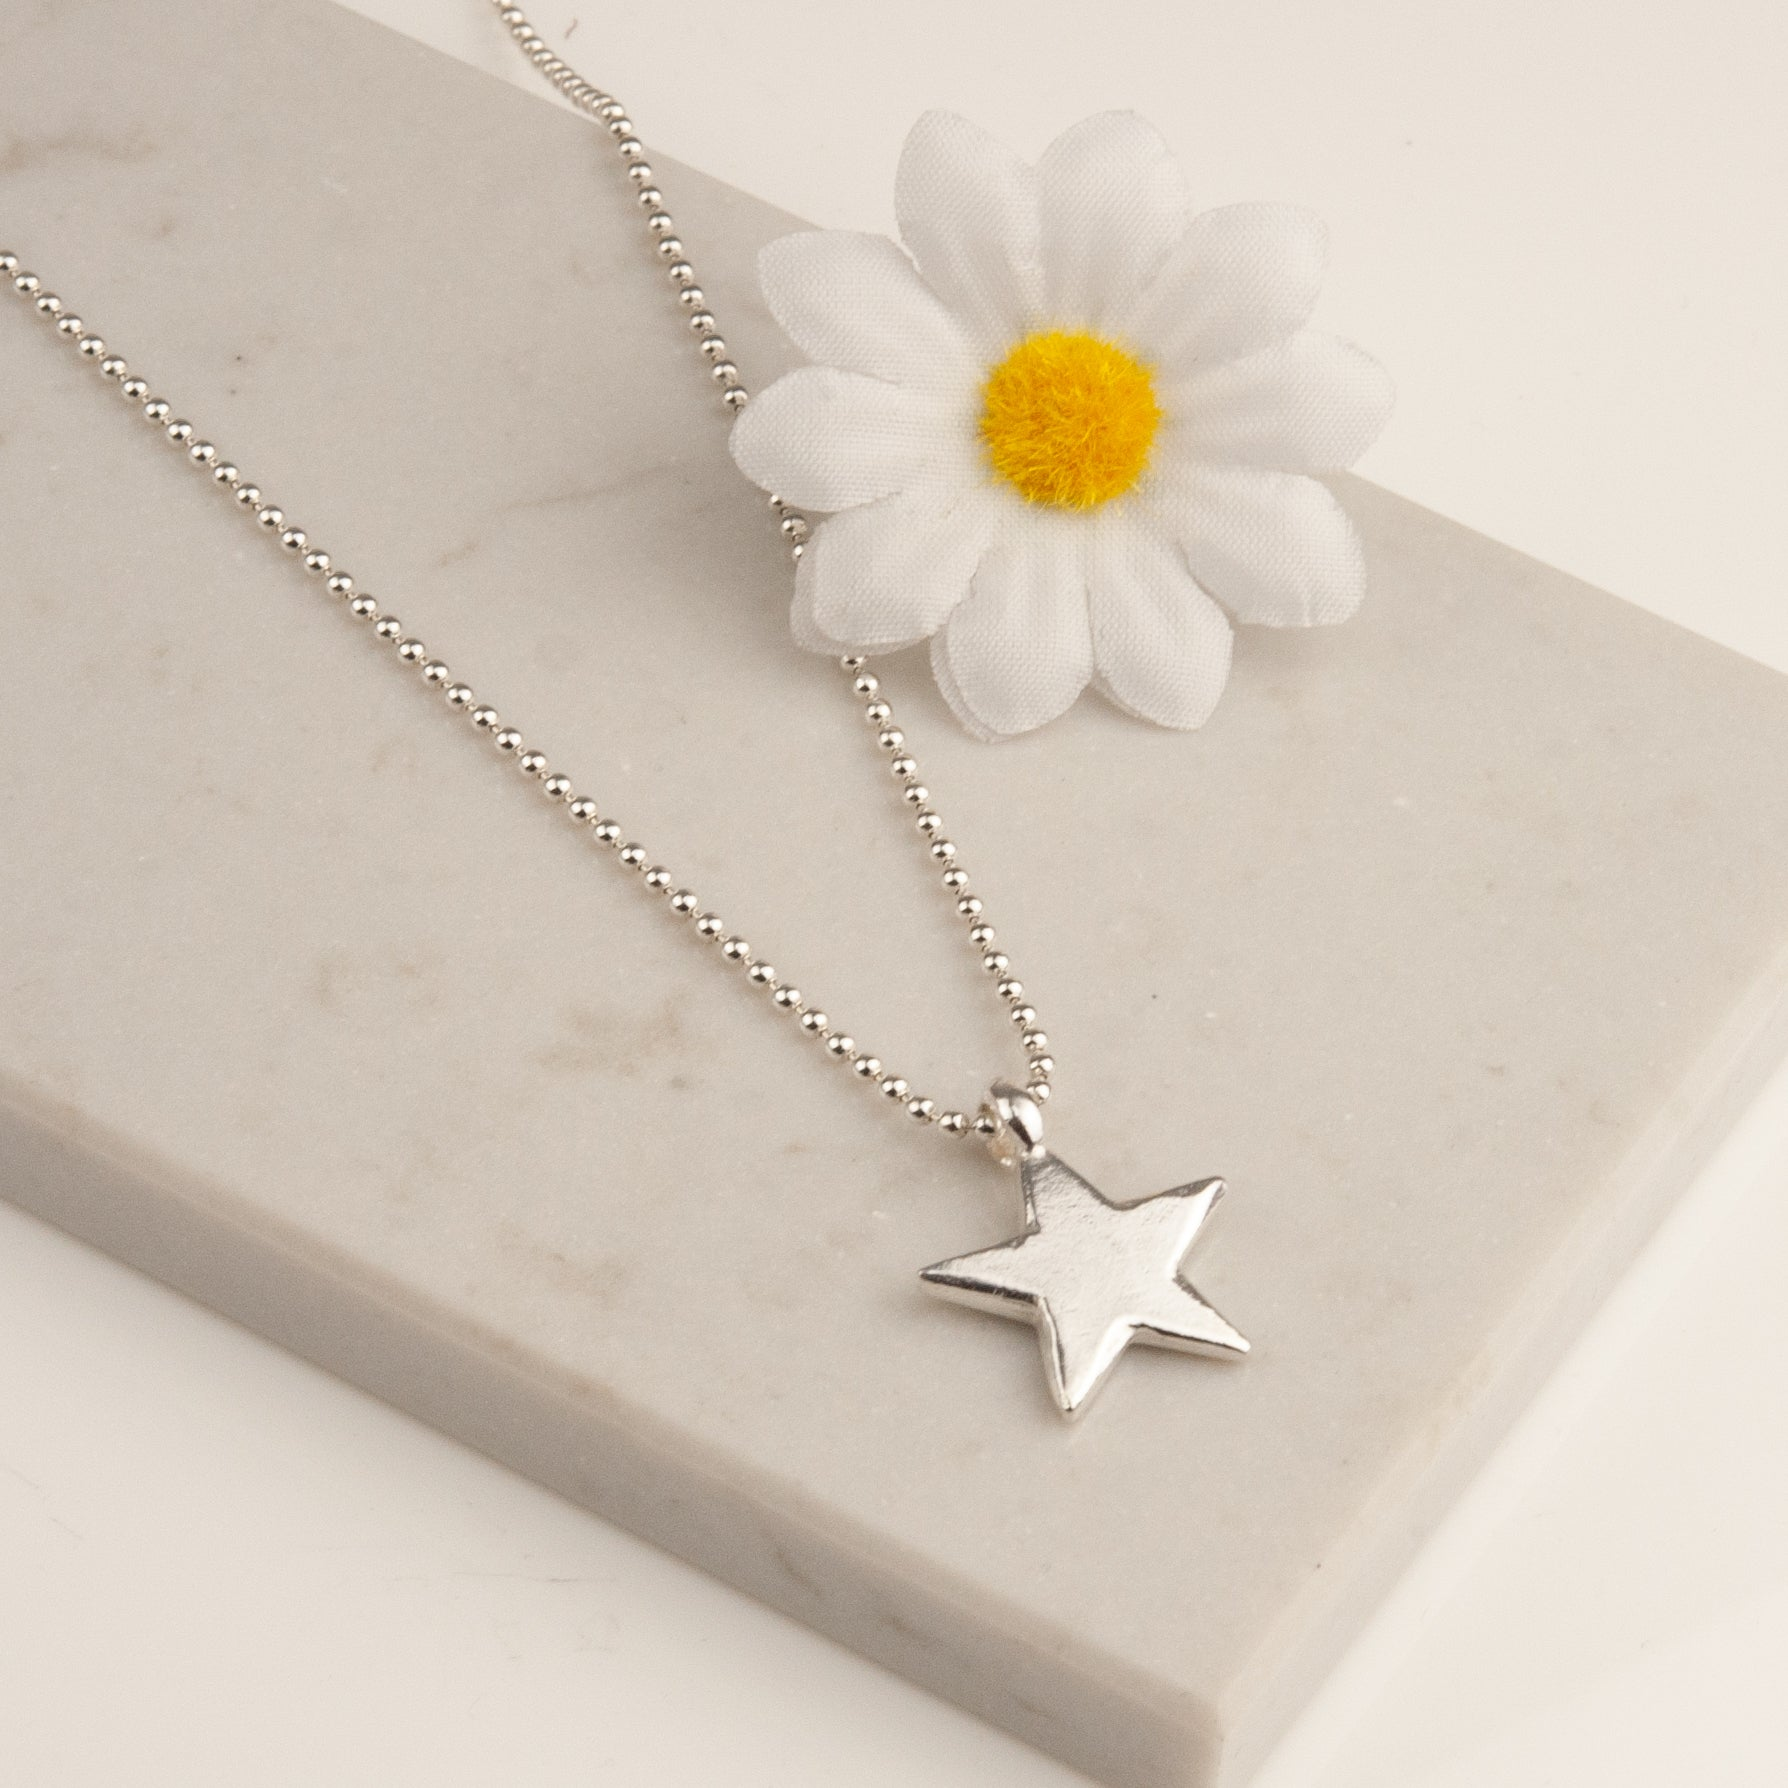 Belle and Bee Sterling Silver Ball Chain Necklace with Midi Chunky Star Charm